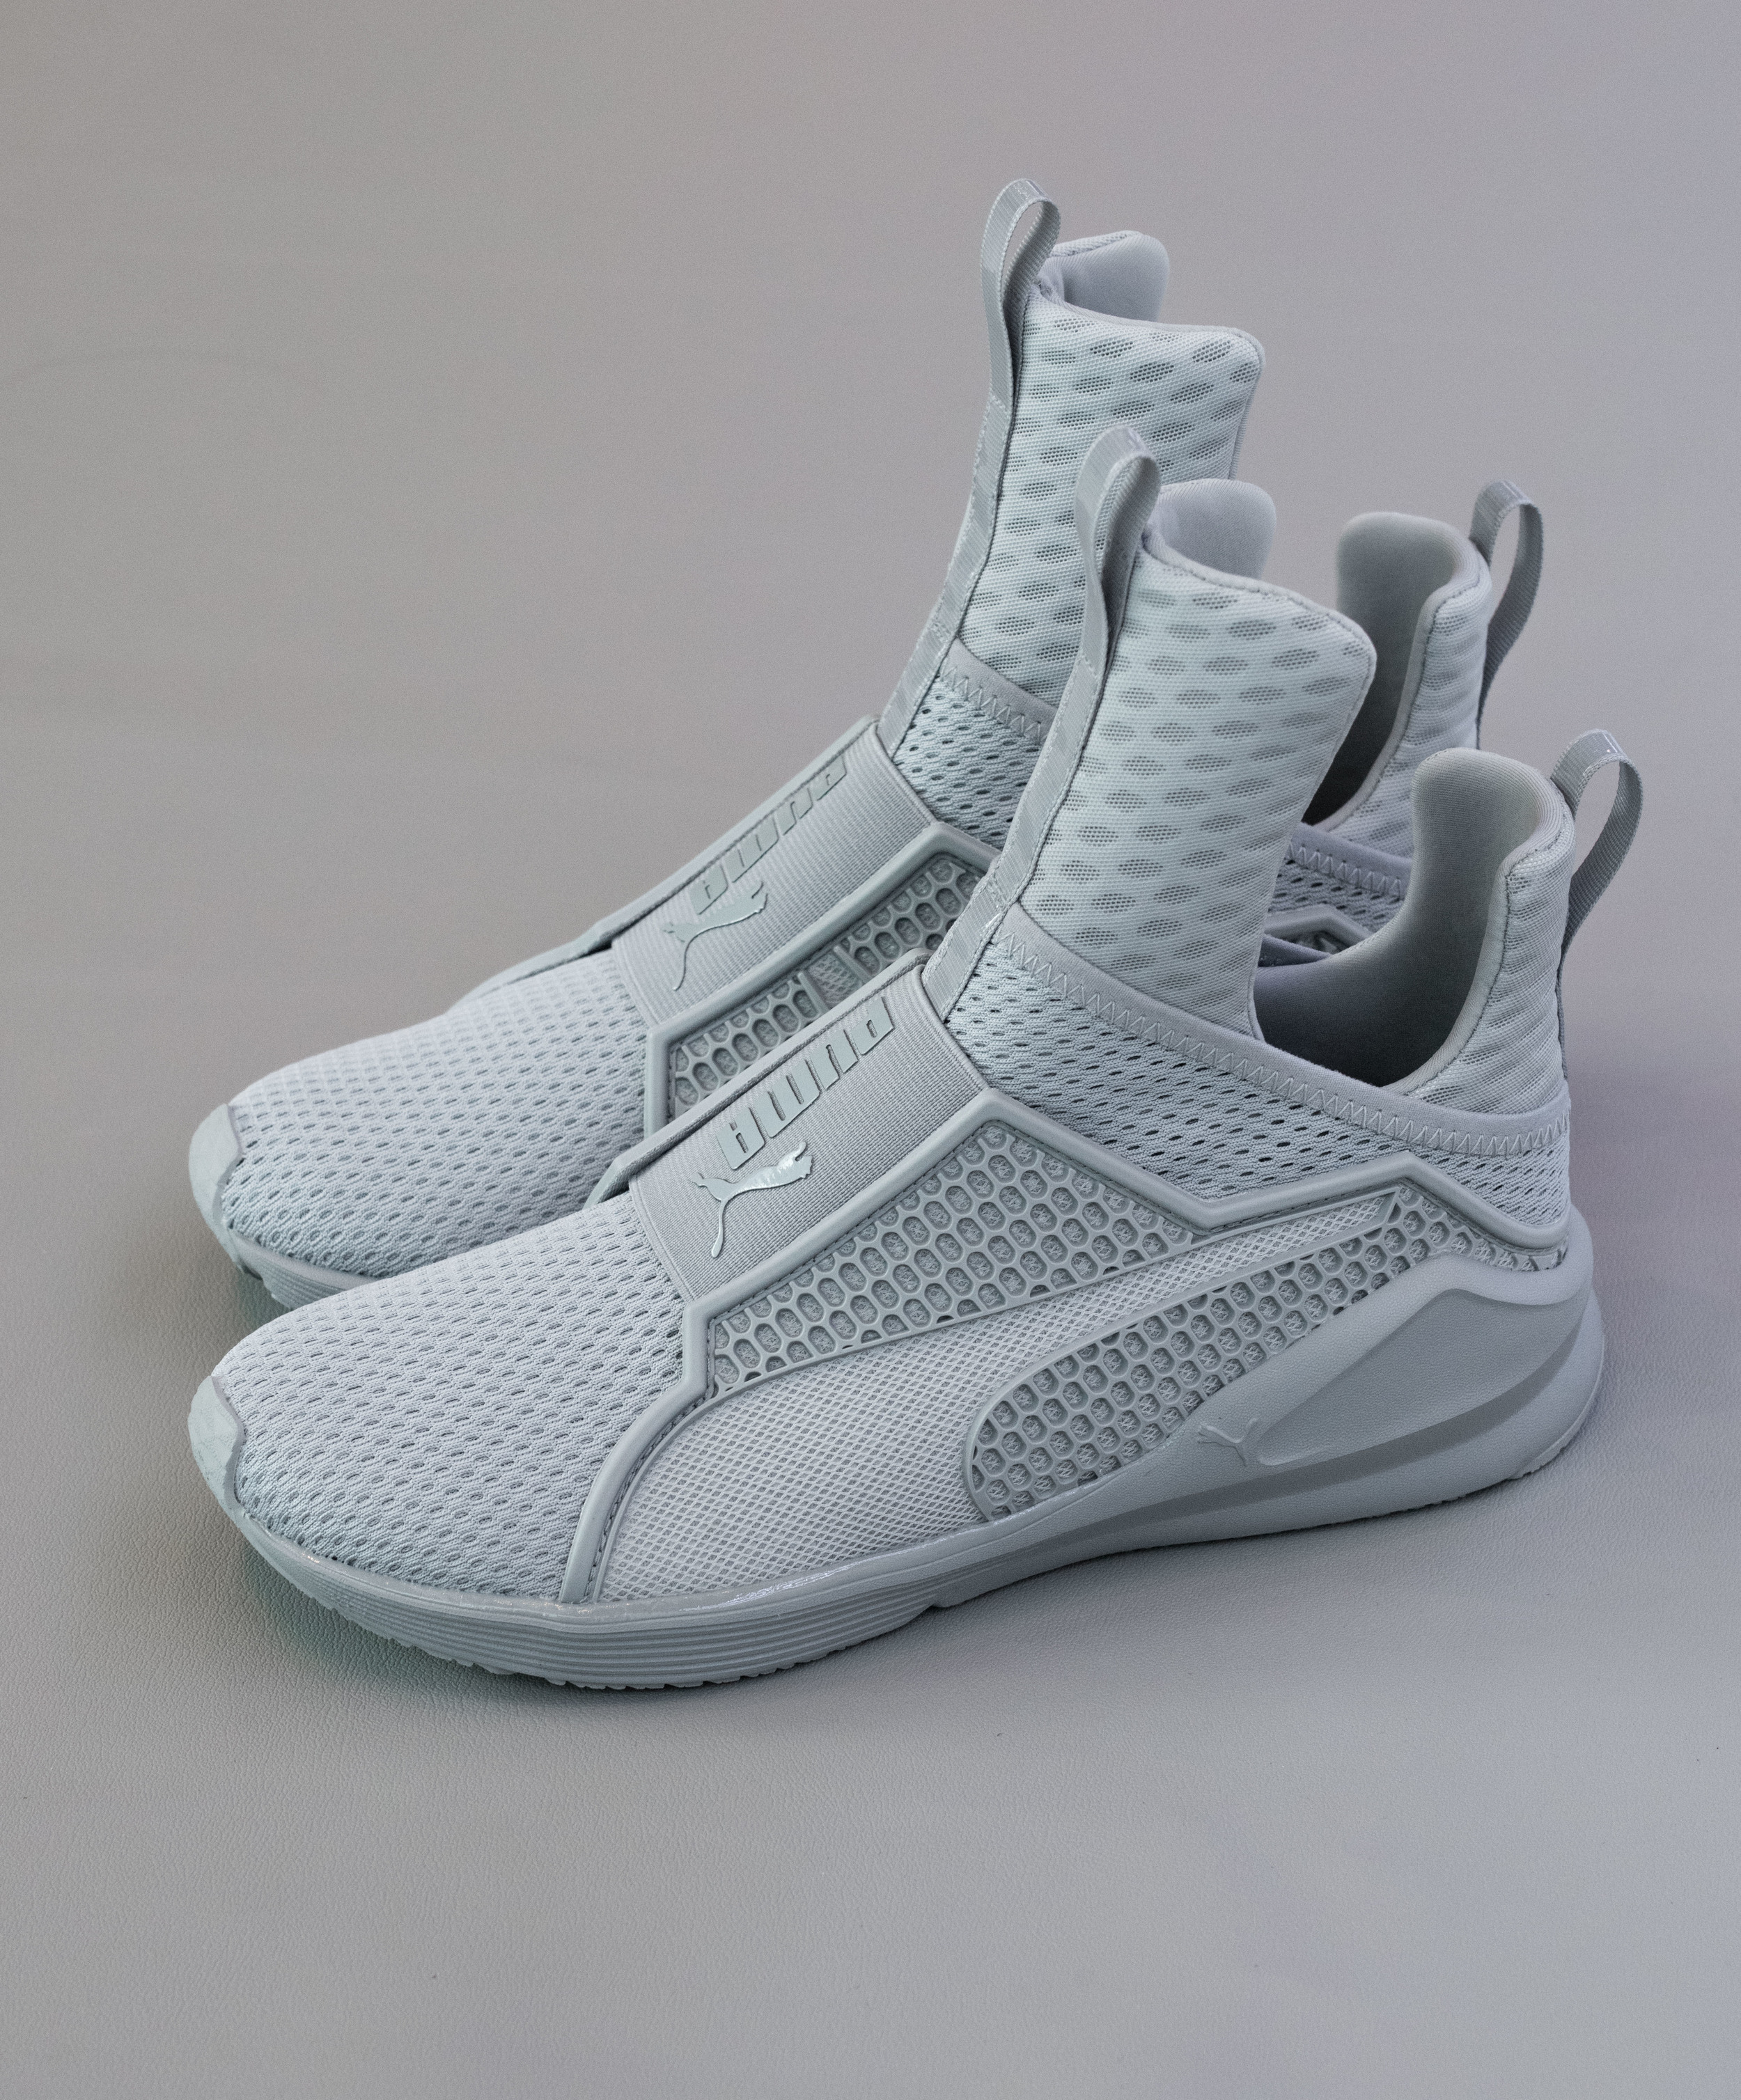 hot sale online 4e323 265ad PUMA FENTY TRAINER BY RIHANNA